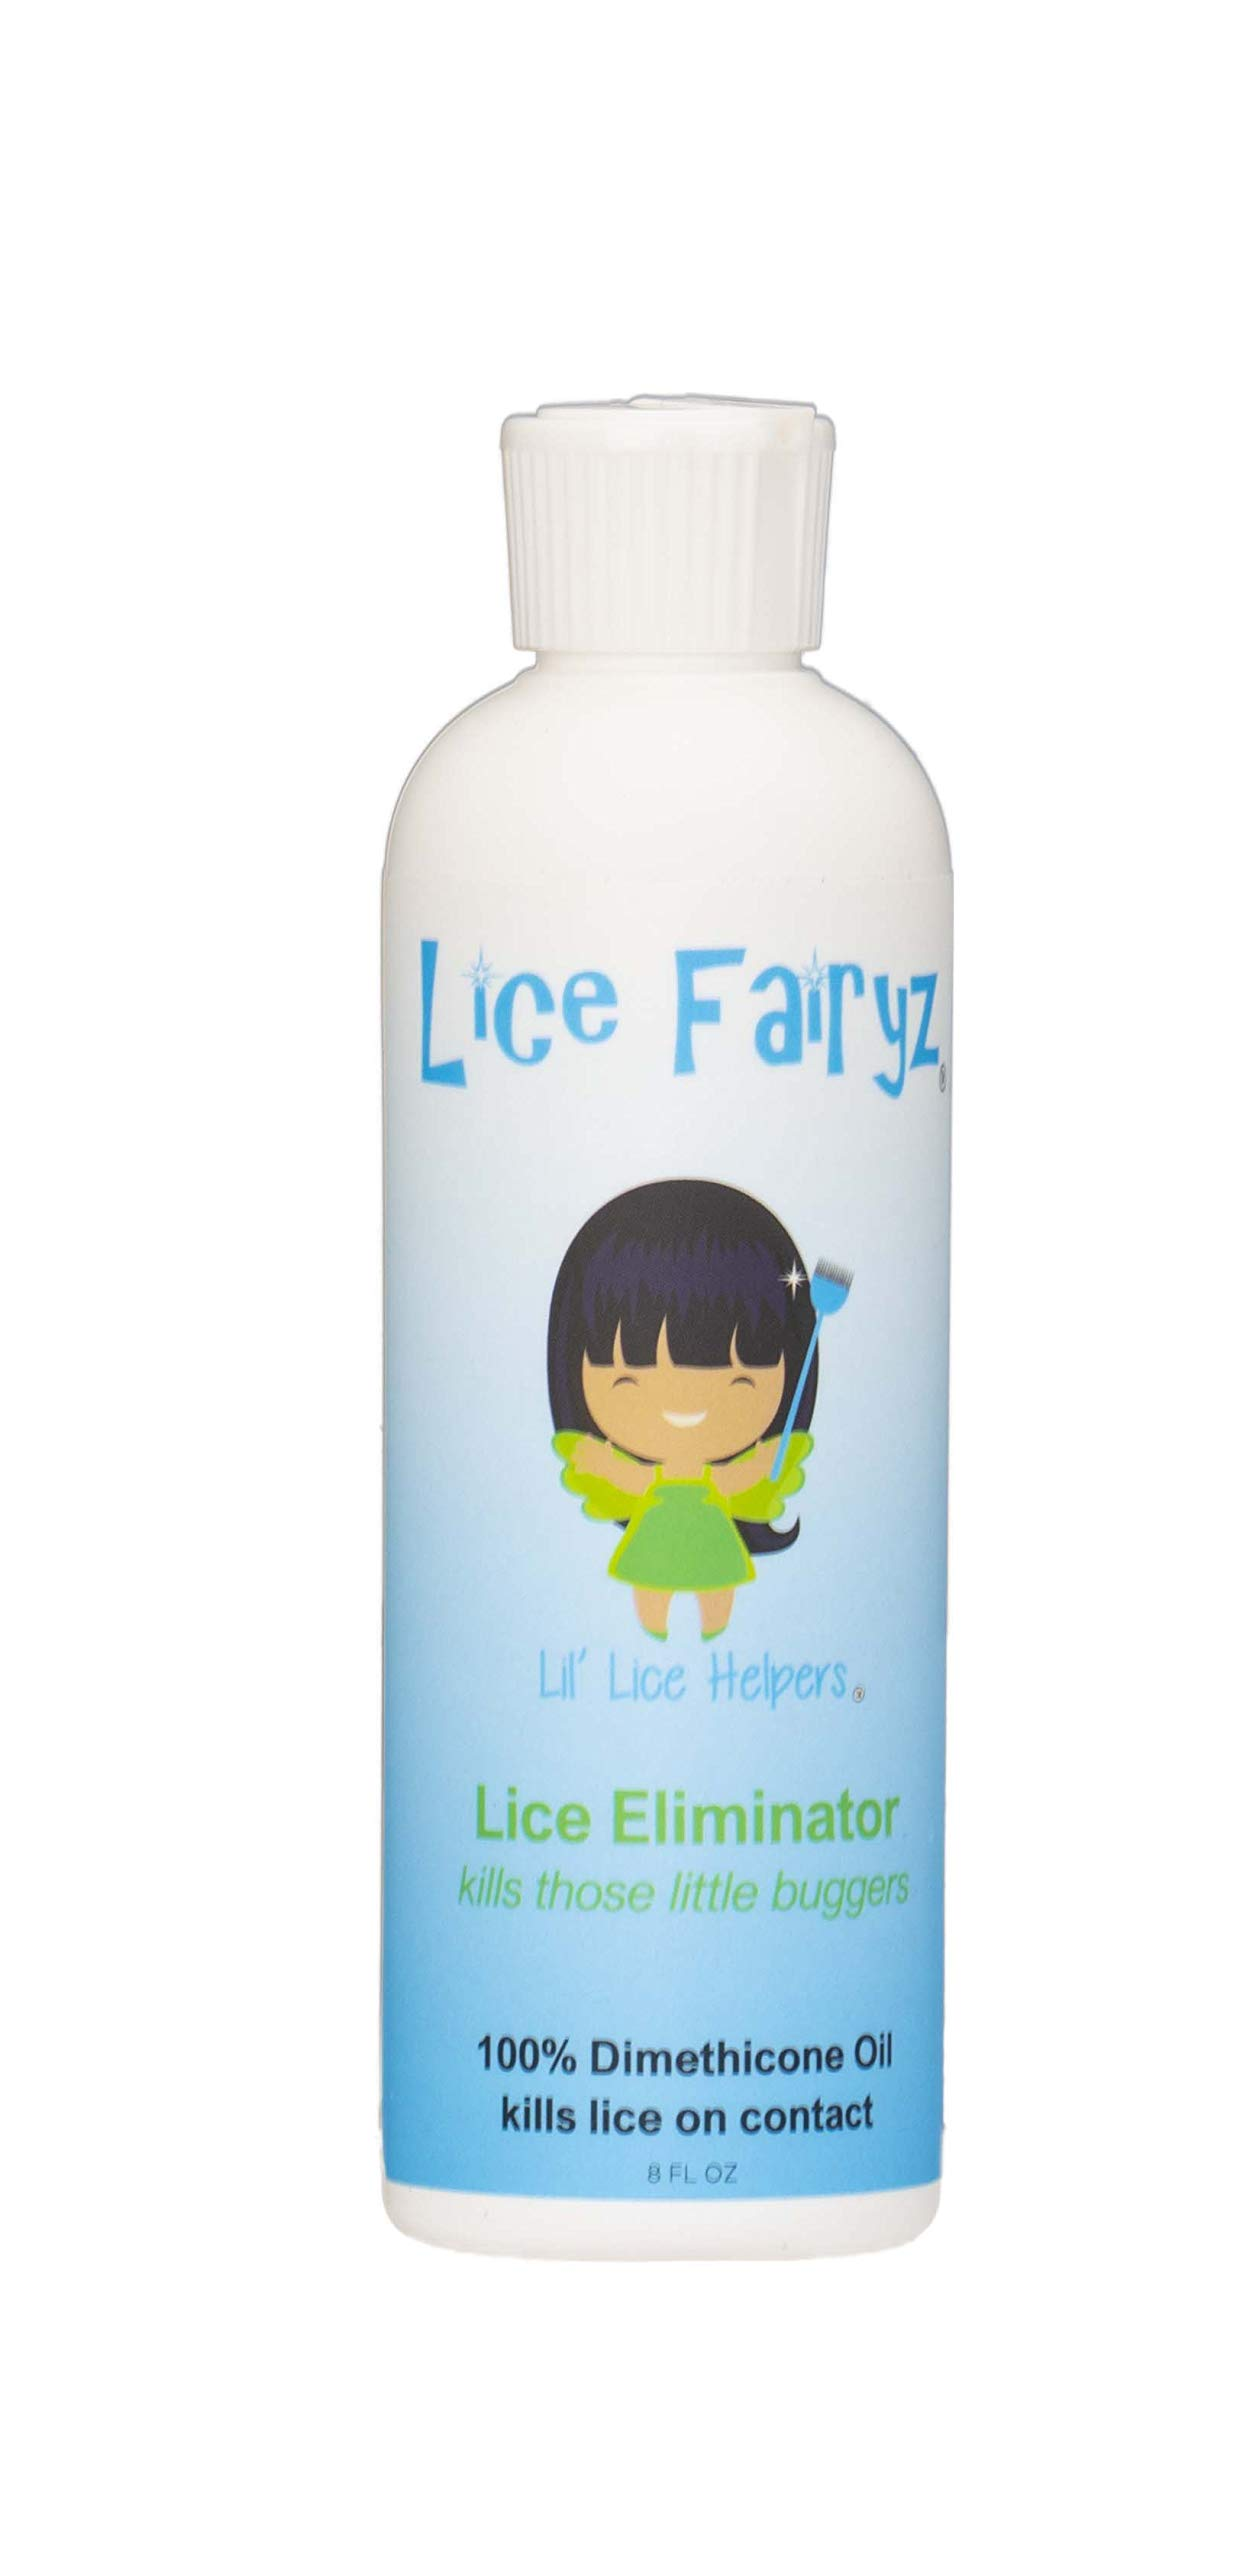 Lice Fairyz Lice Eliminator is 100% Effective & Clinically Proven to Eliminate Live Head Lice, Even Super LICE! Kills Naturally. Pesticide-Free. Chemical-Free. Non-Toxic. Safe for Kids of All Ages.